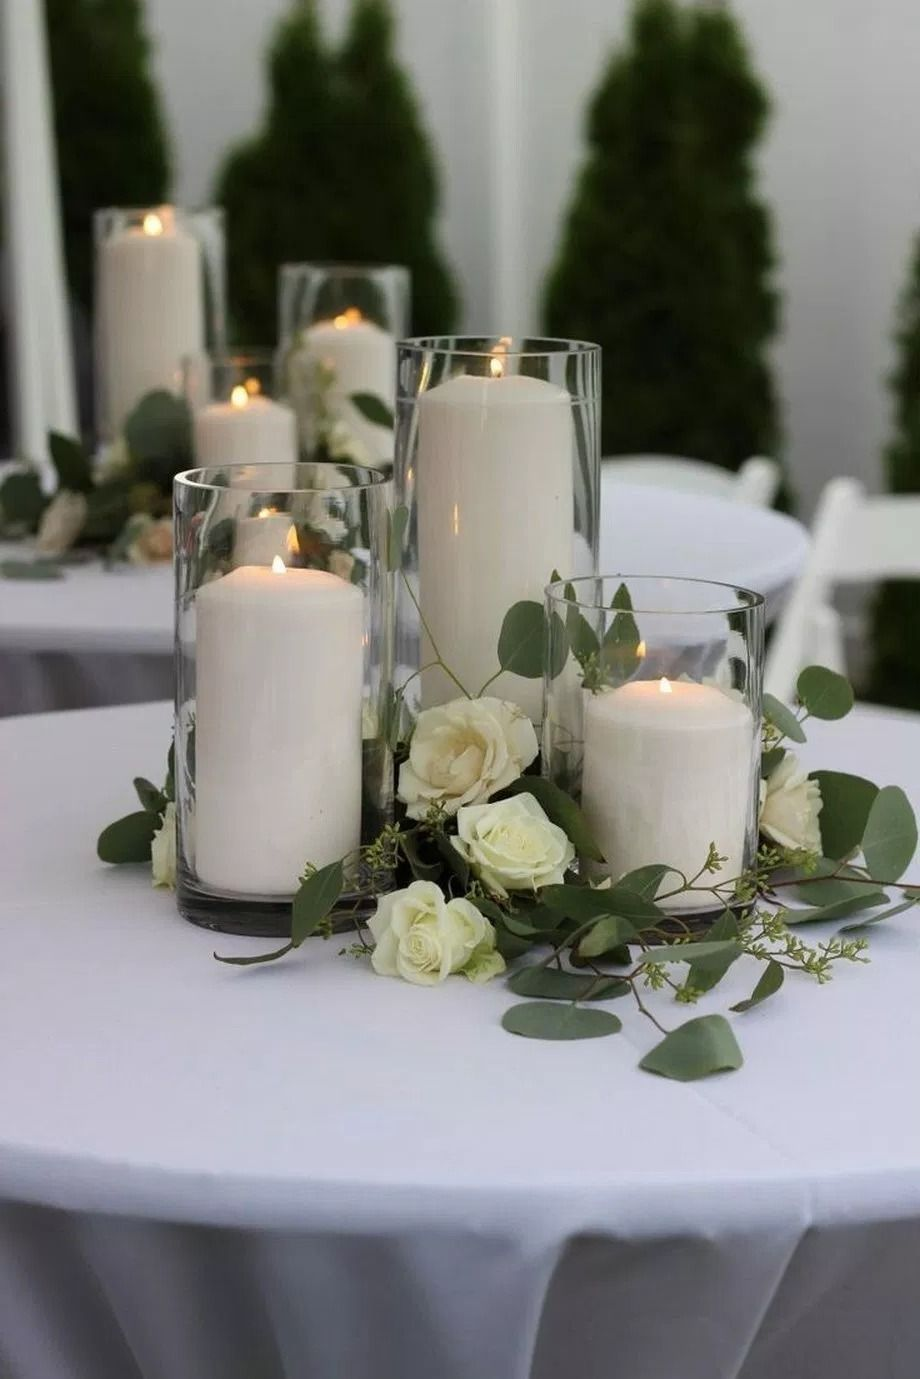 20 Romantic Wedding Centerpieces With Candles